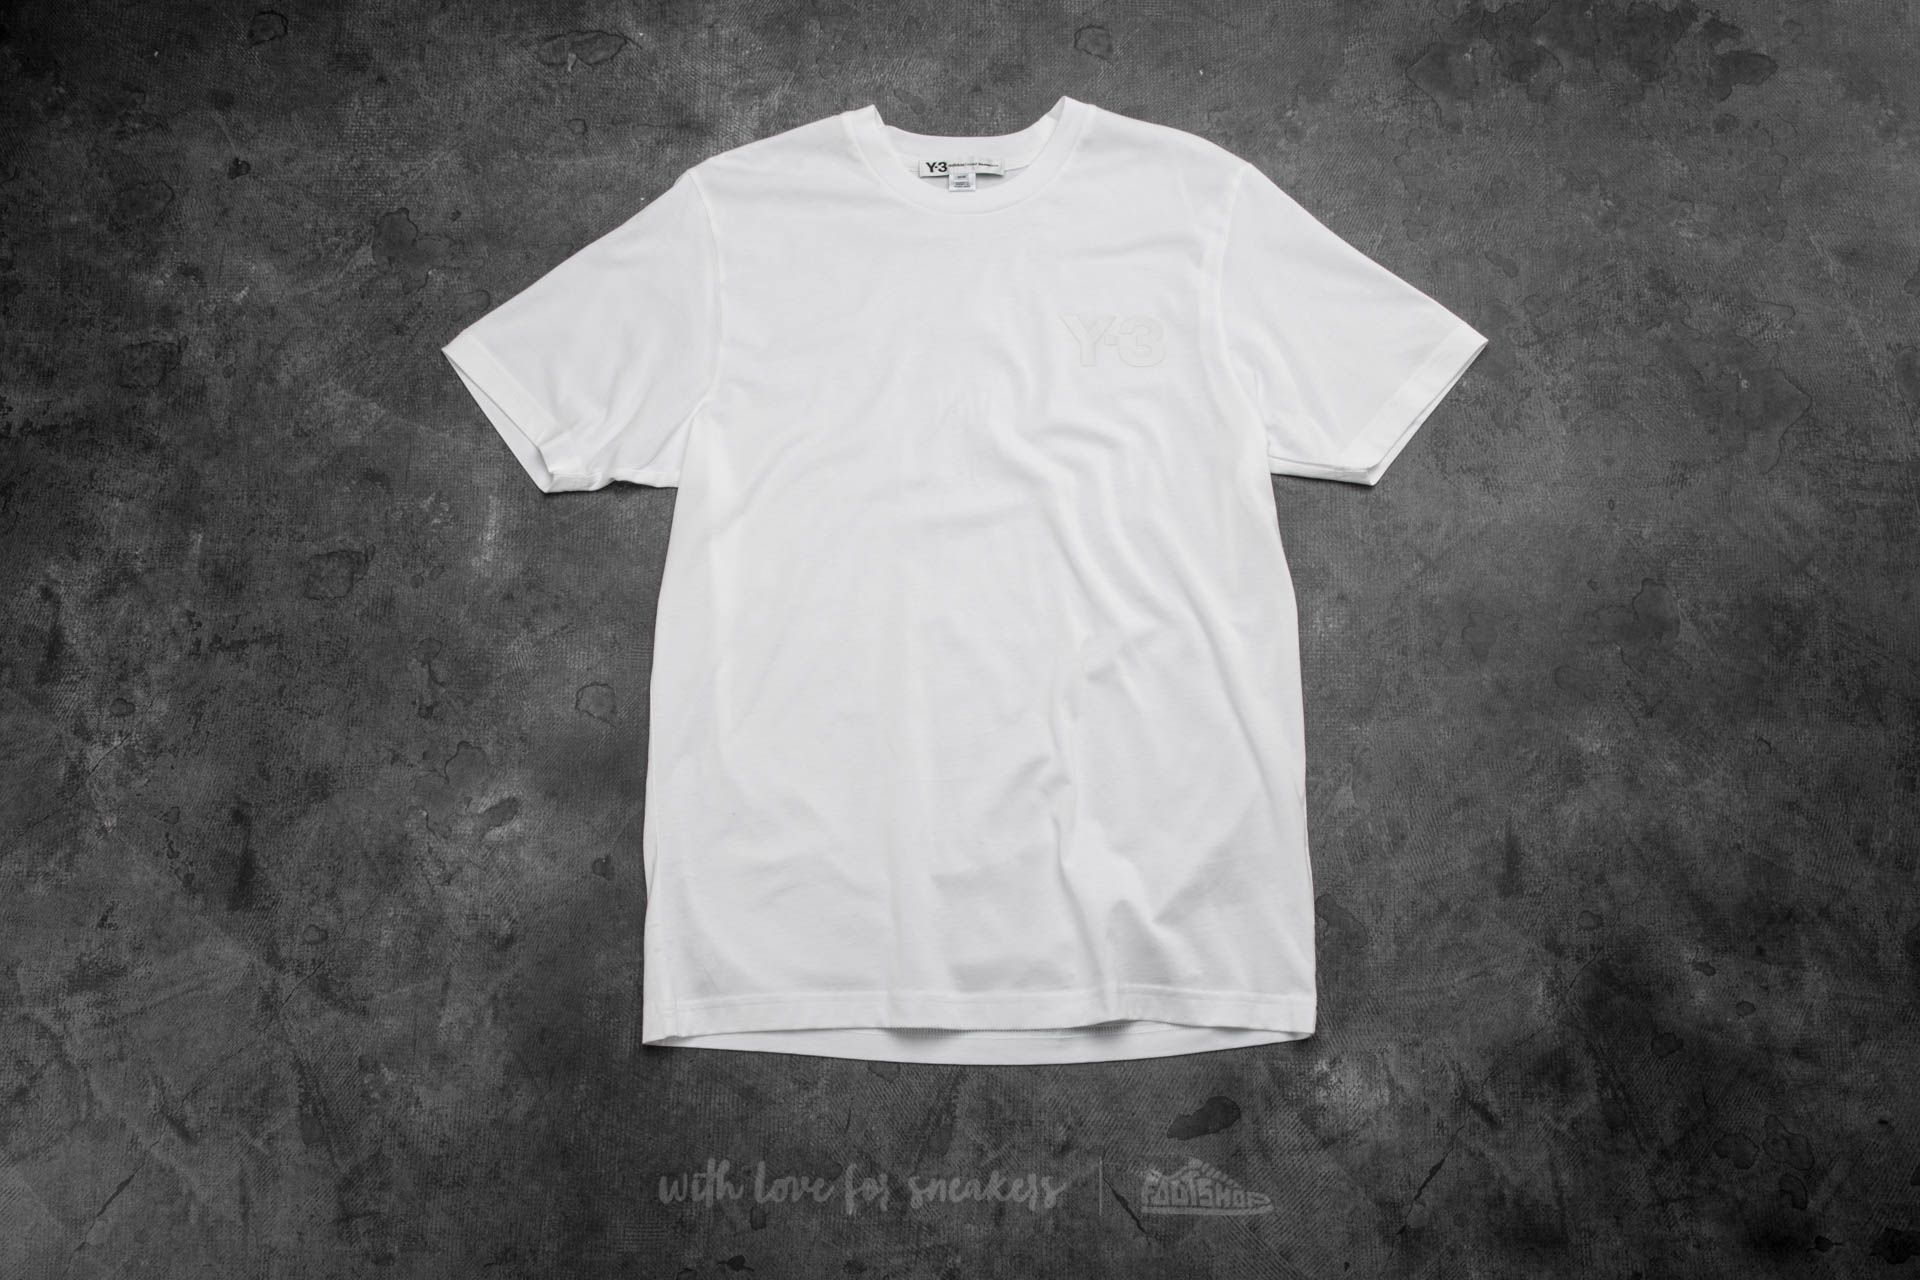 Y-3 Classic Short Sleeve Tee White - 12832